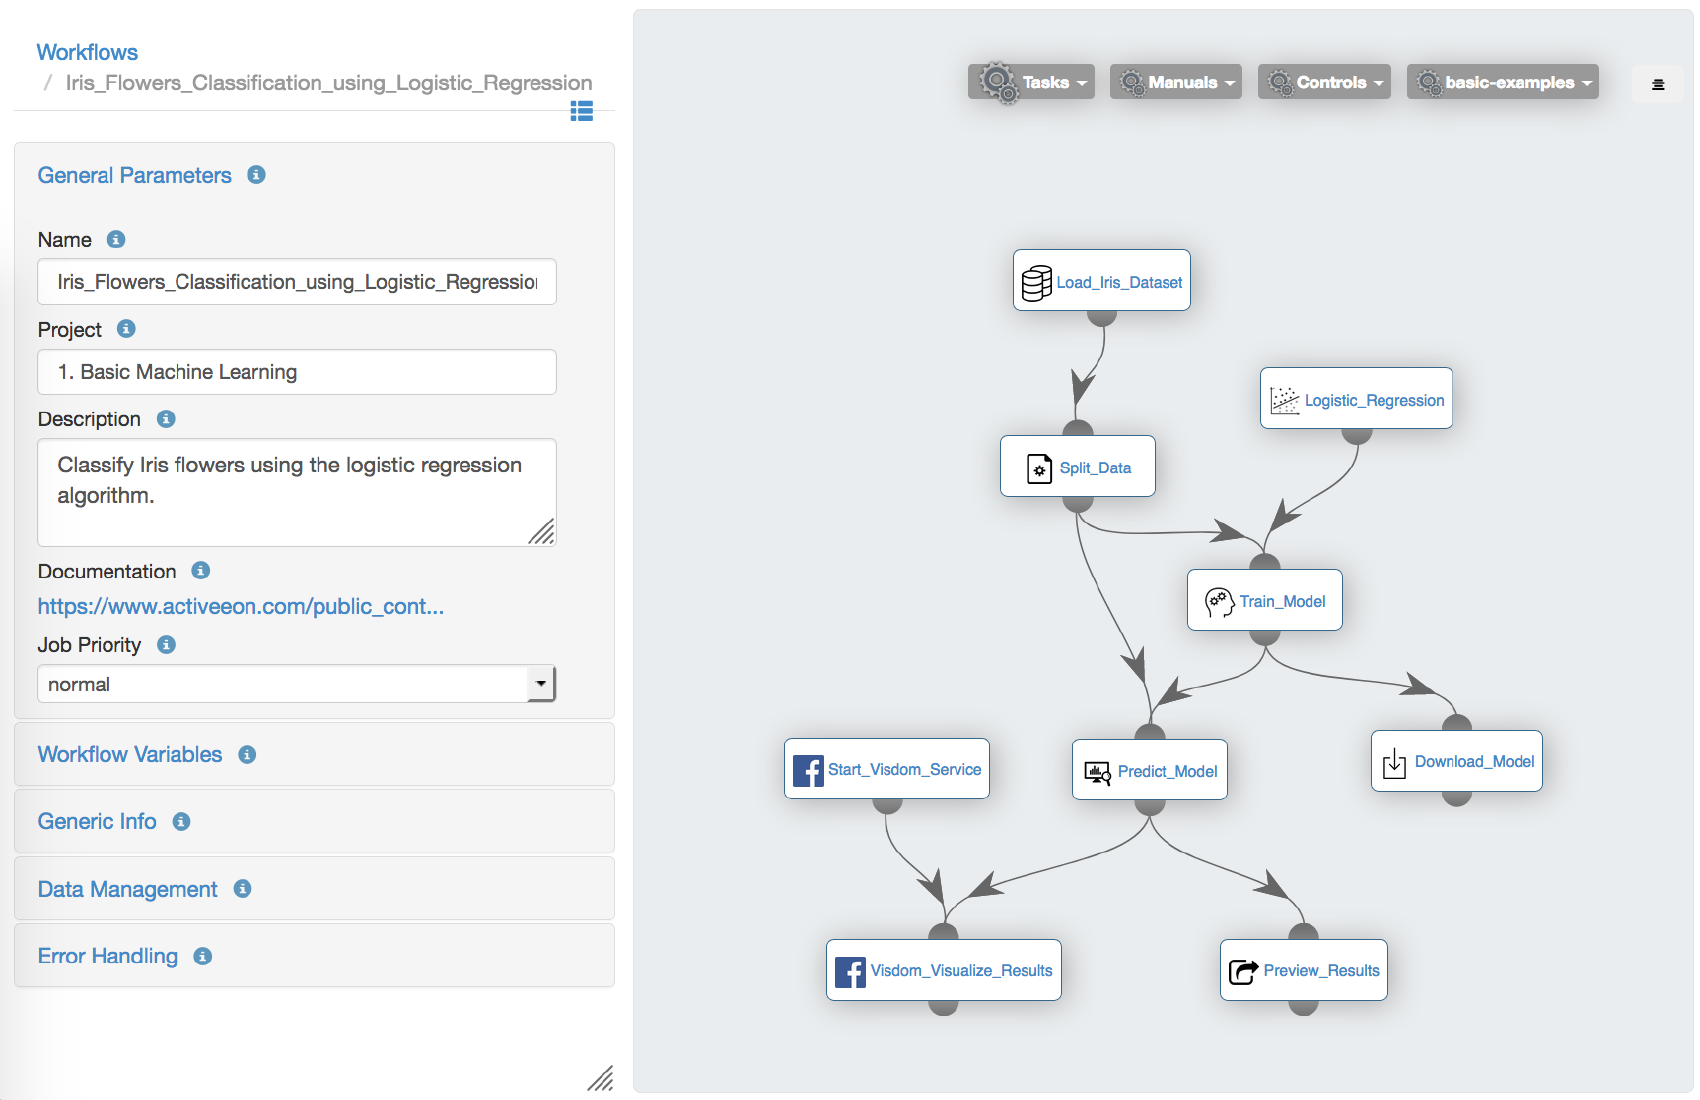 images/product-screenshots/proactive-workflow-machine-learning.png